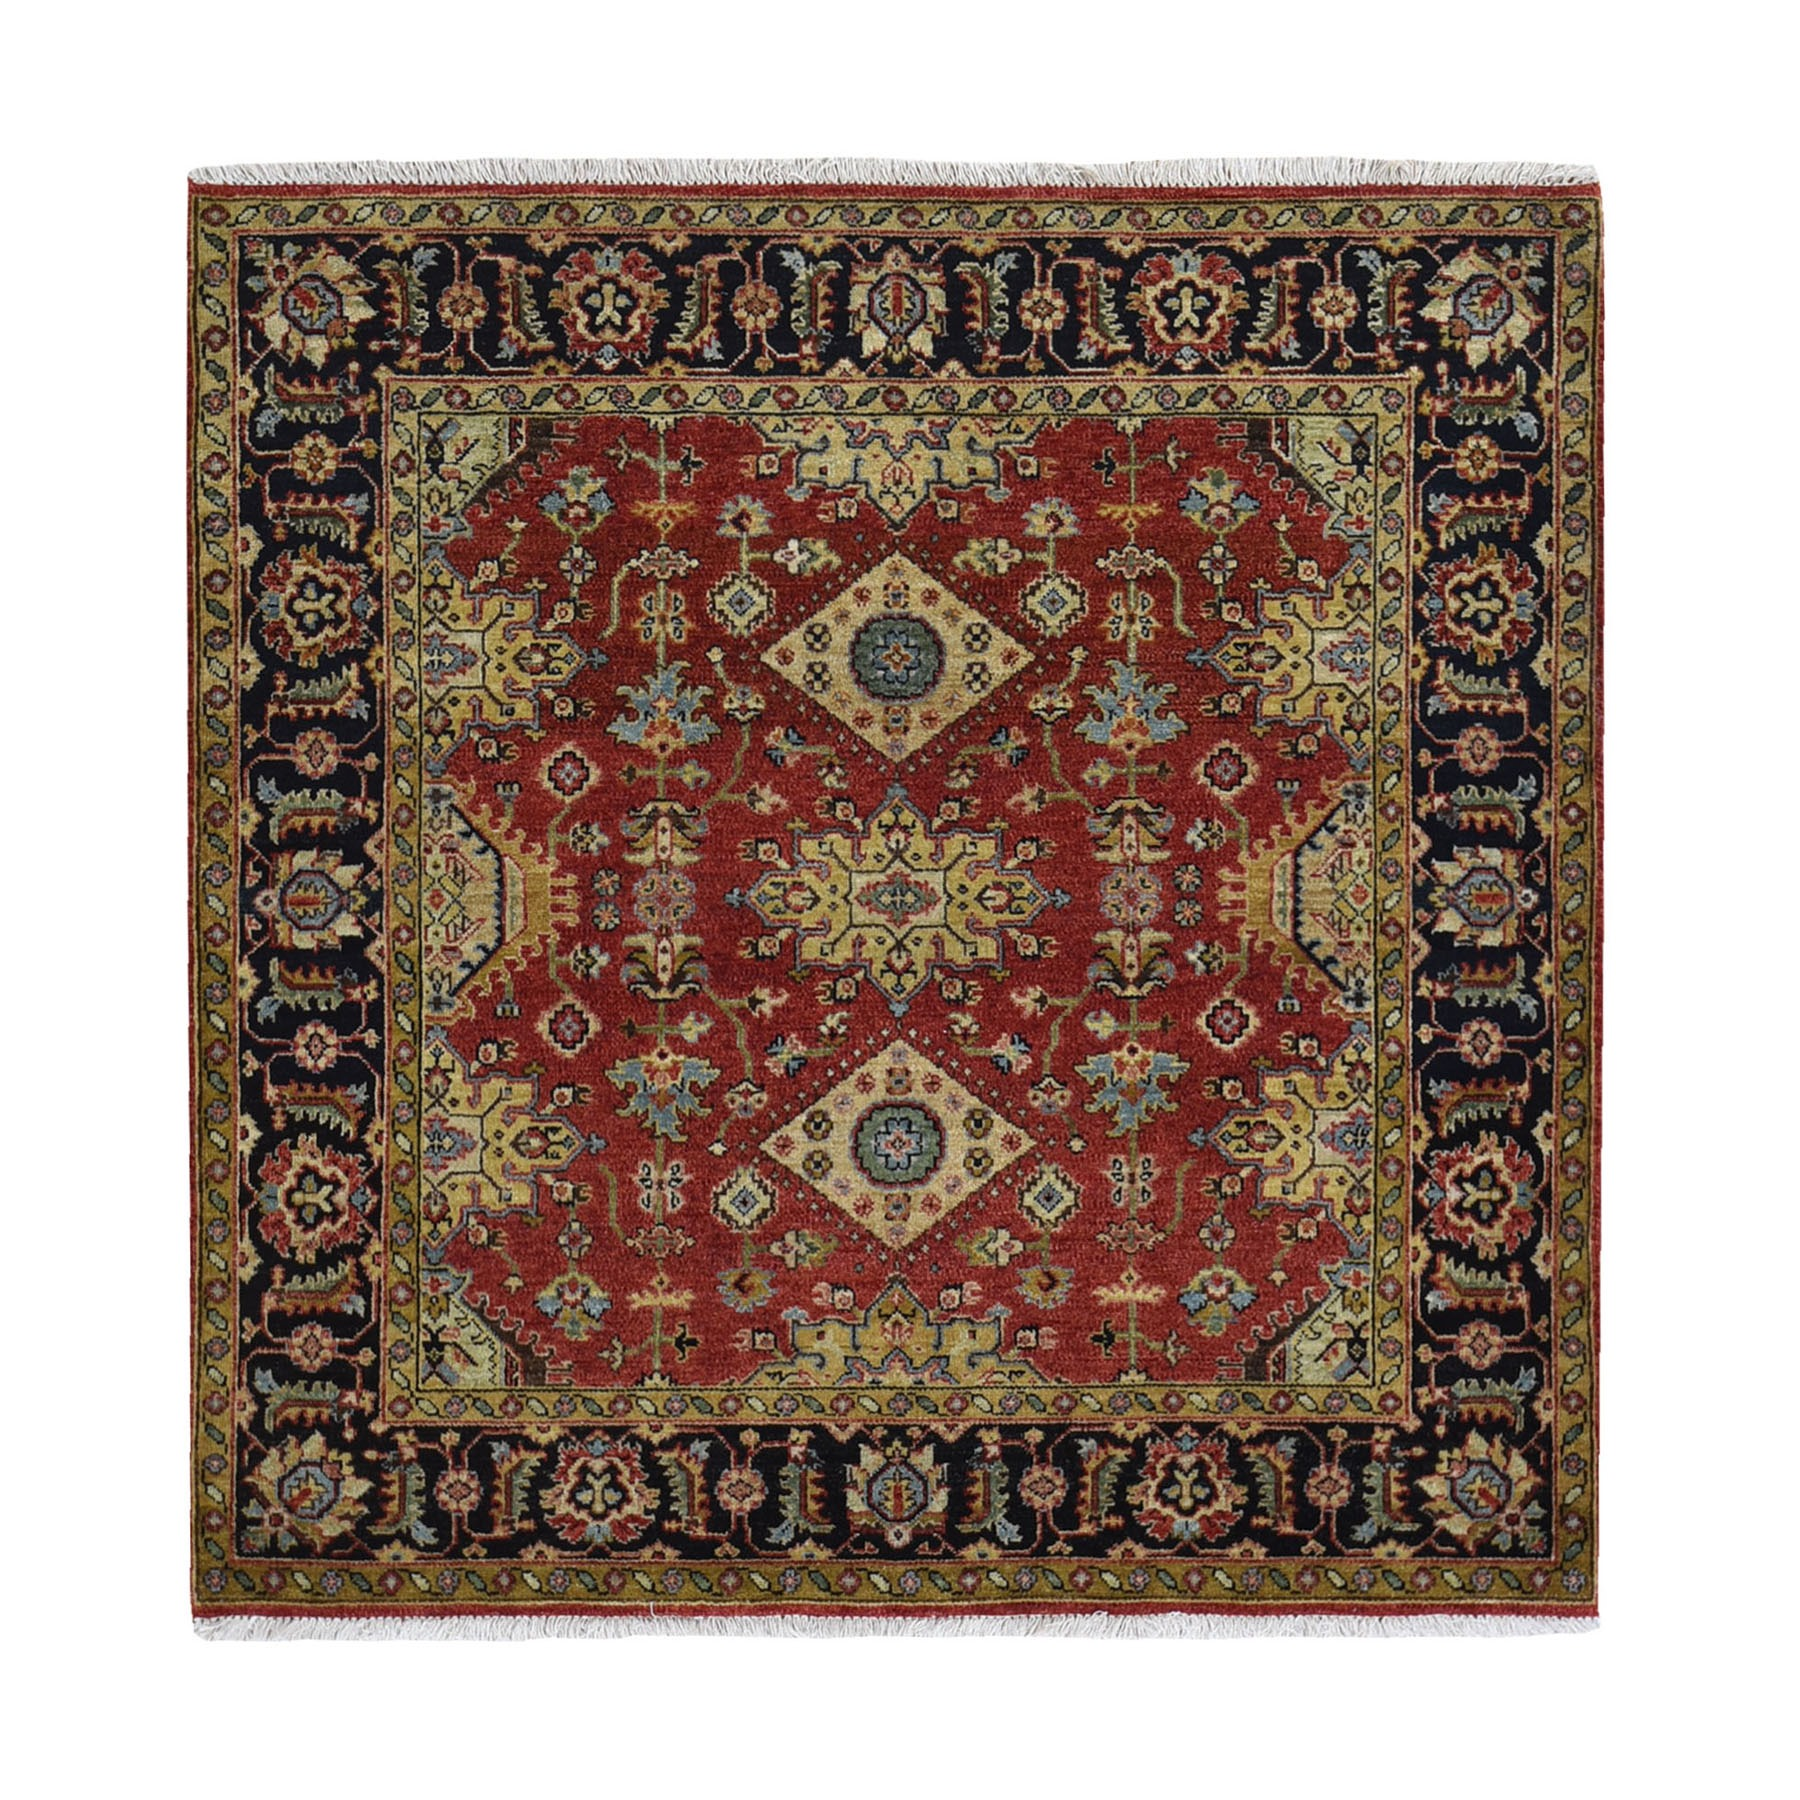 5'x5' Red Karajeh Design Pure Wool Square Hand Knotted Oriental Rug